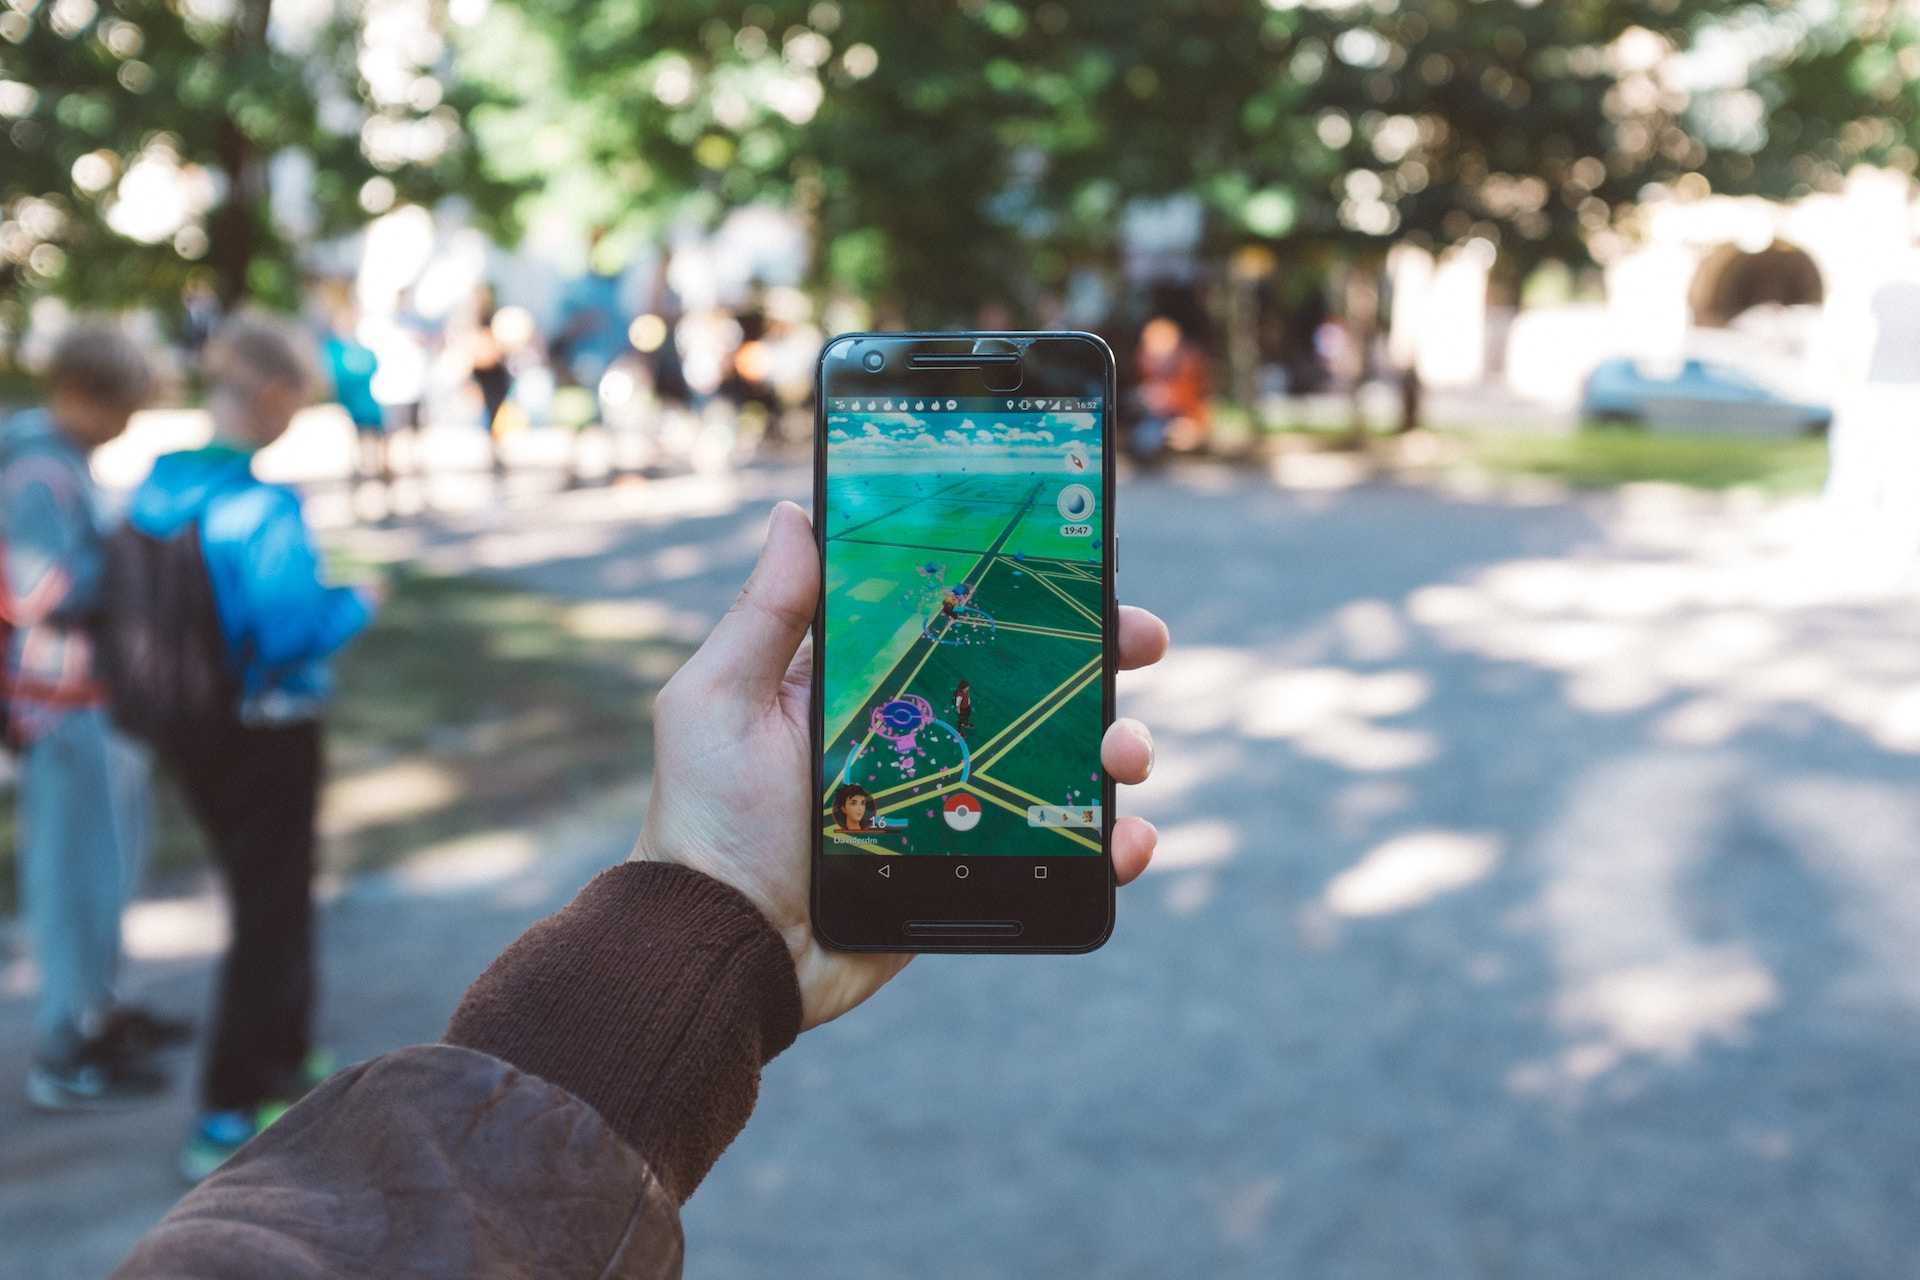 In 2016, Pokémon GO became one of the most downloaded apps ever.